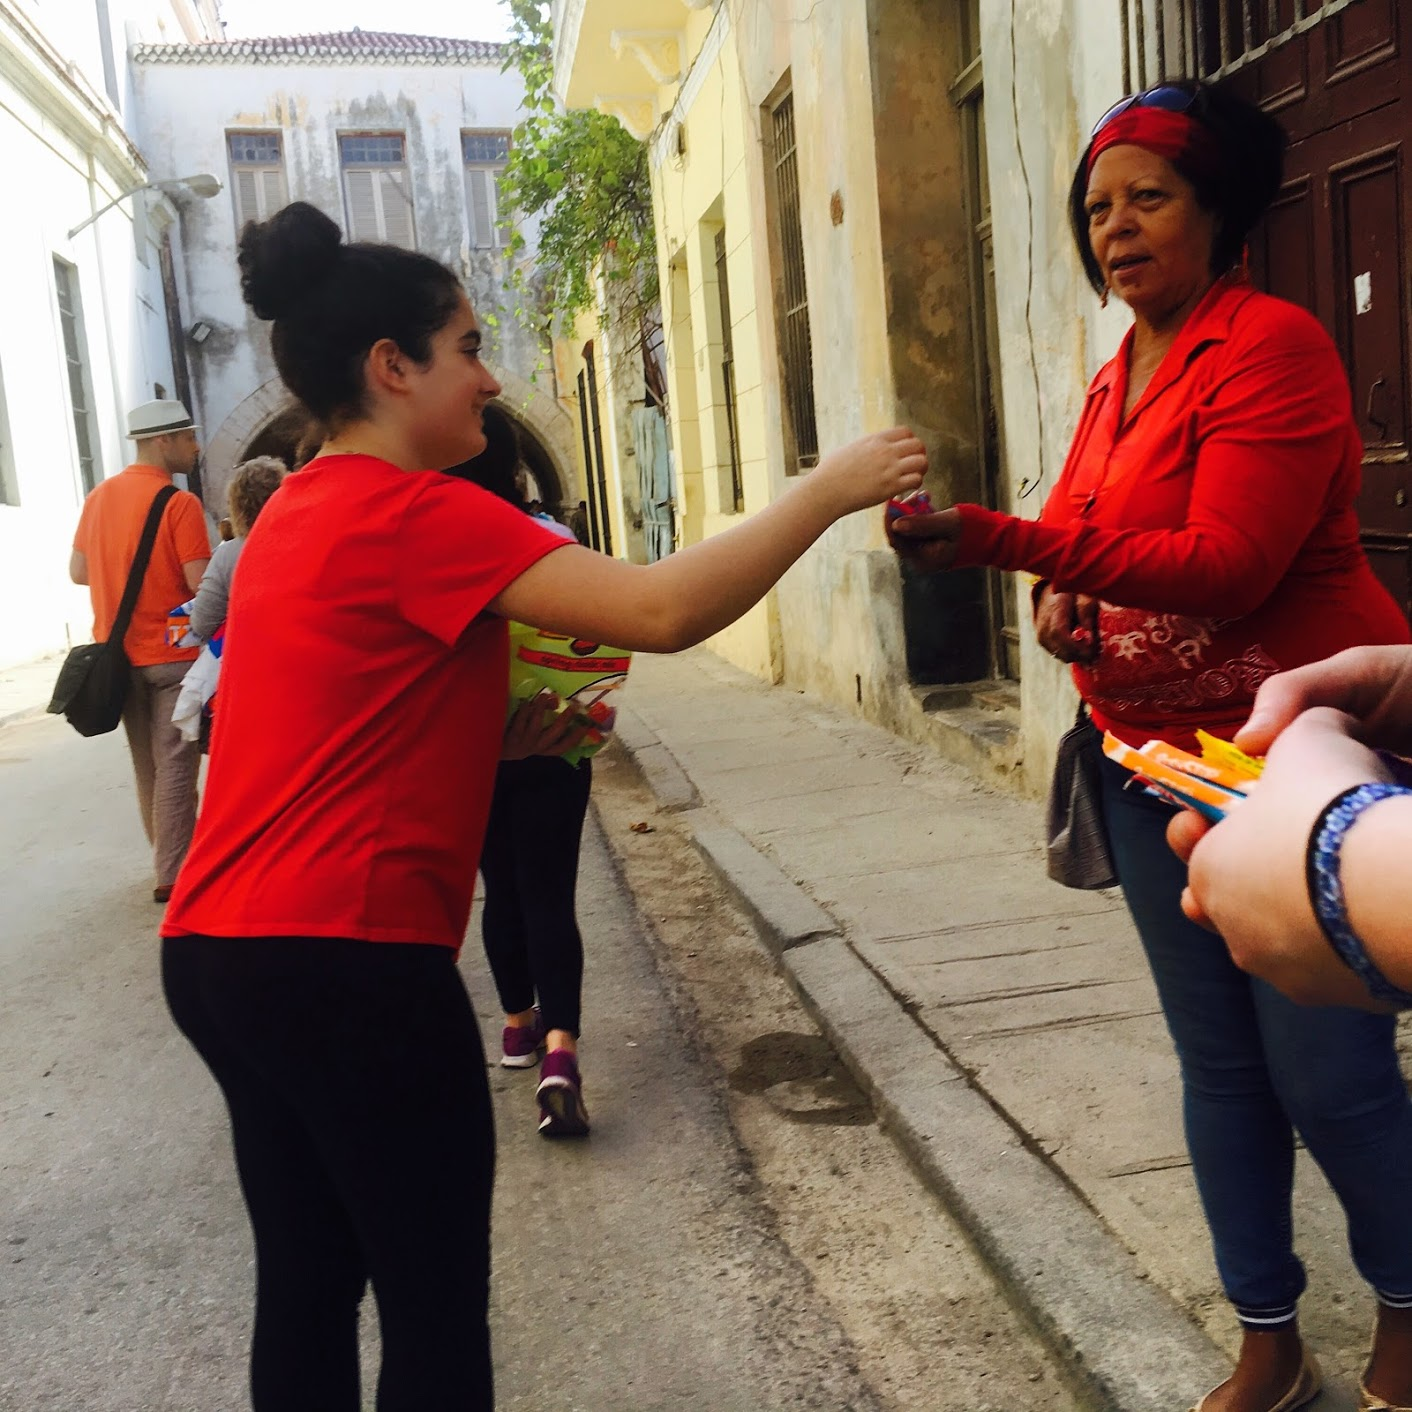 Handing out candy on the streets of Havana